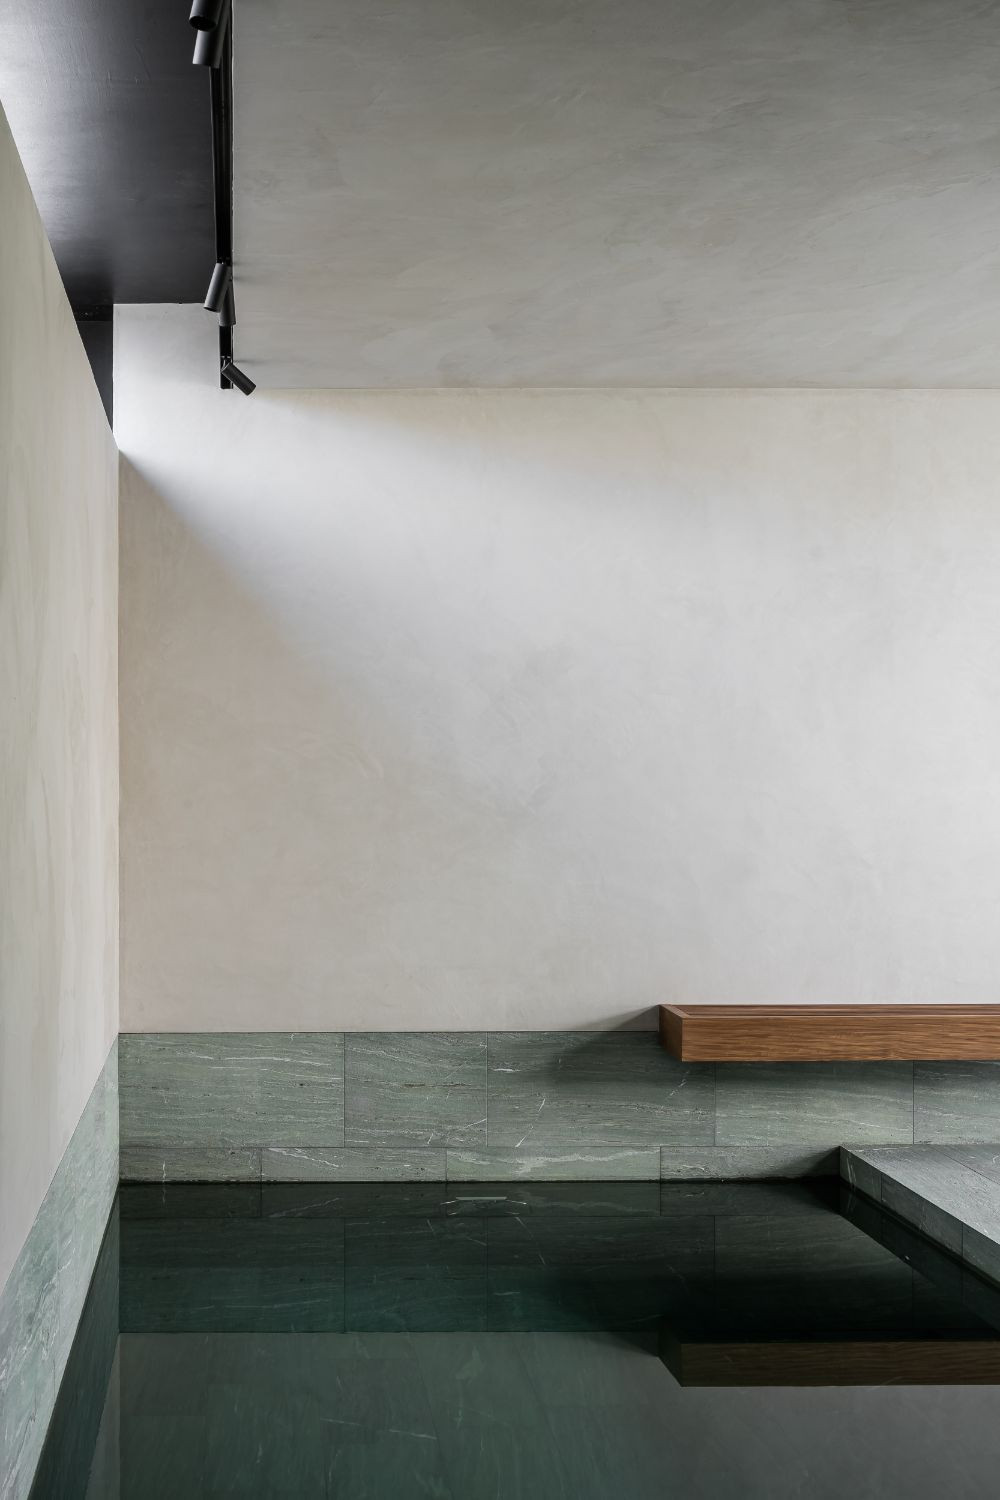 Rietveldprojects - House MP - Indoor swimminpool - Pic by Cafeïne 9